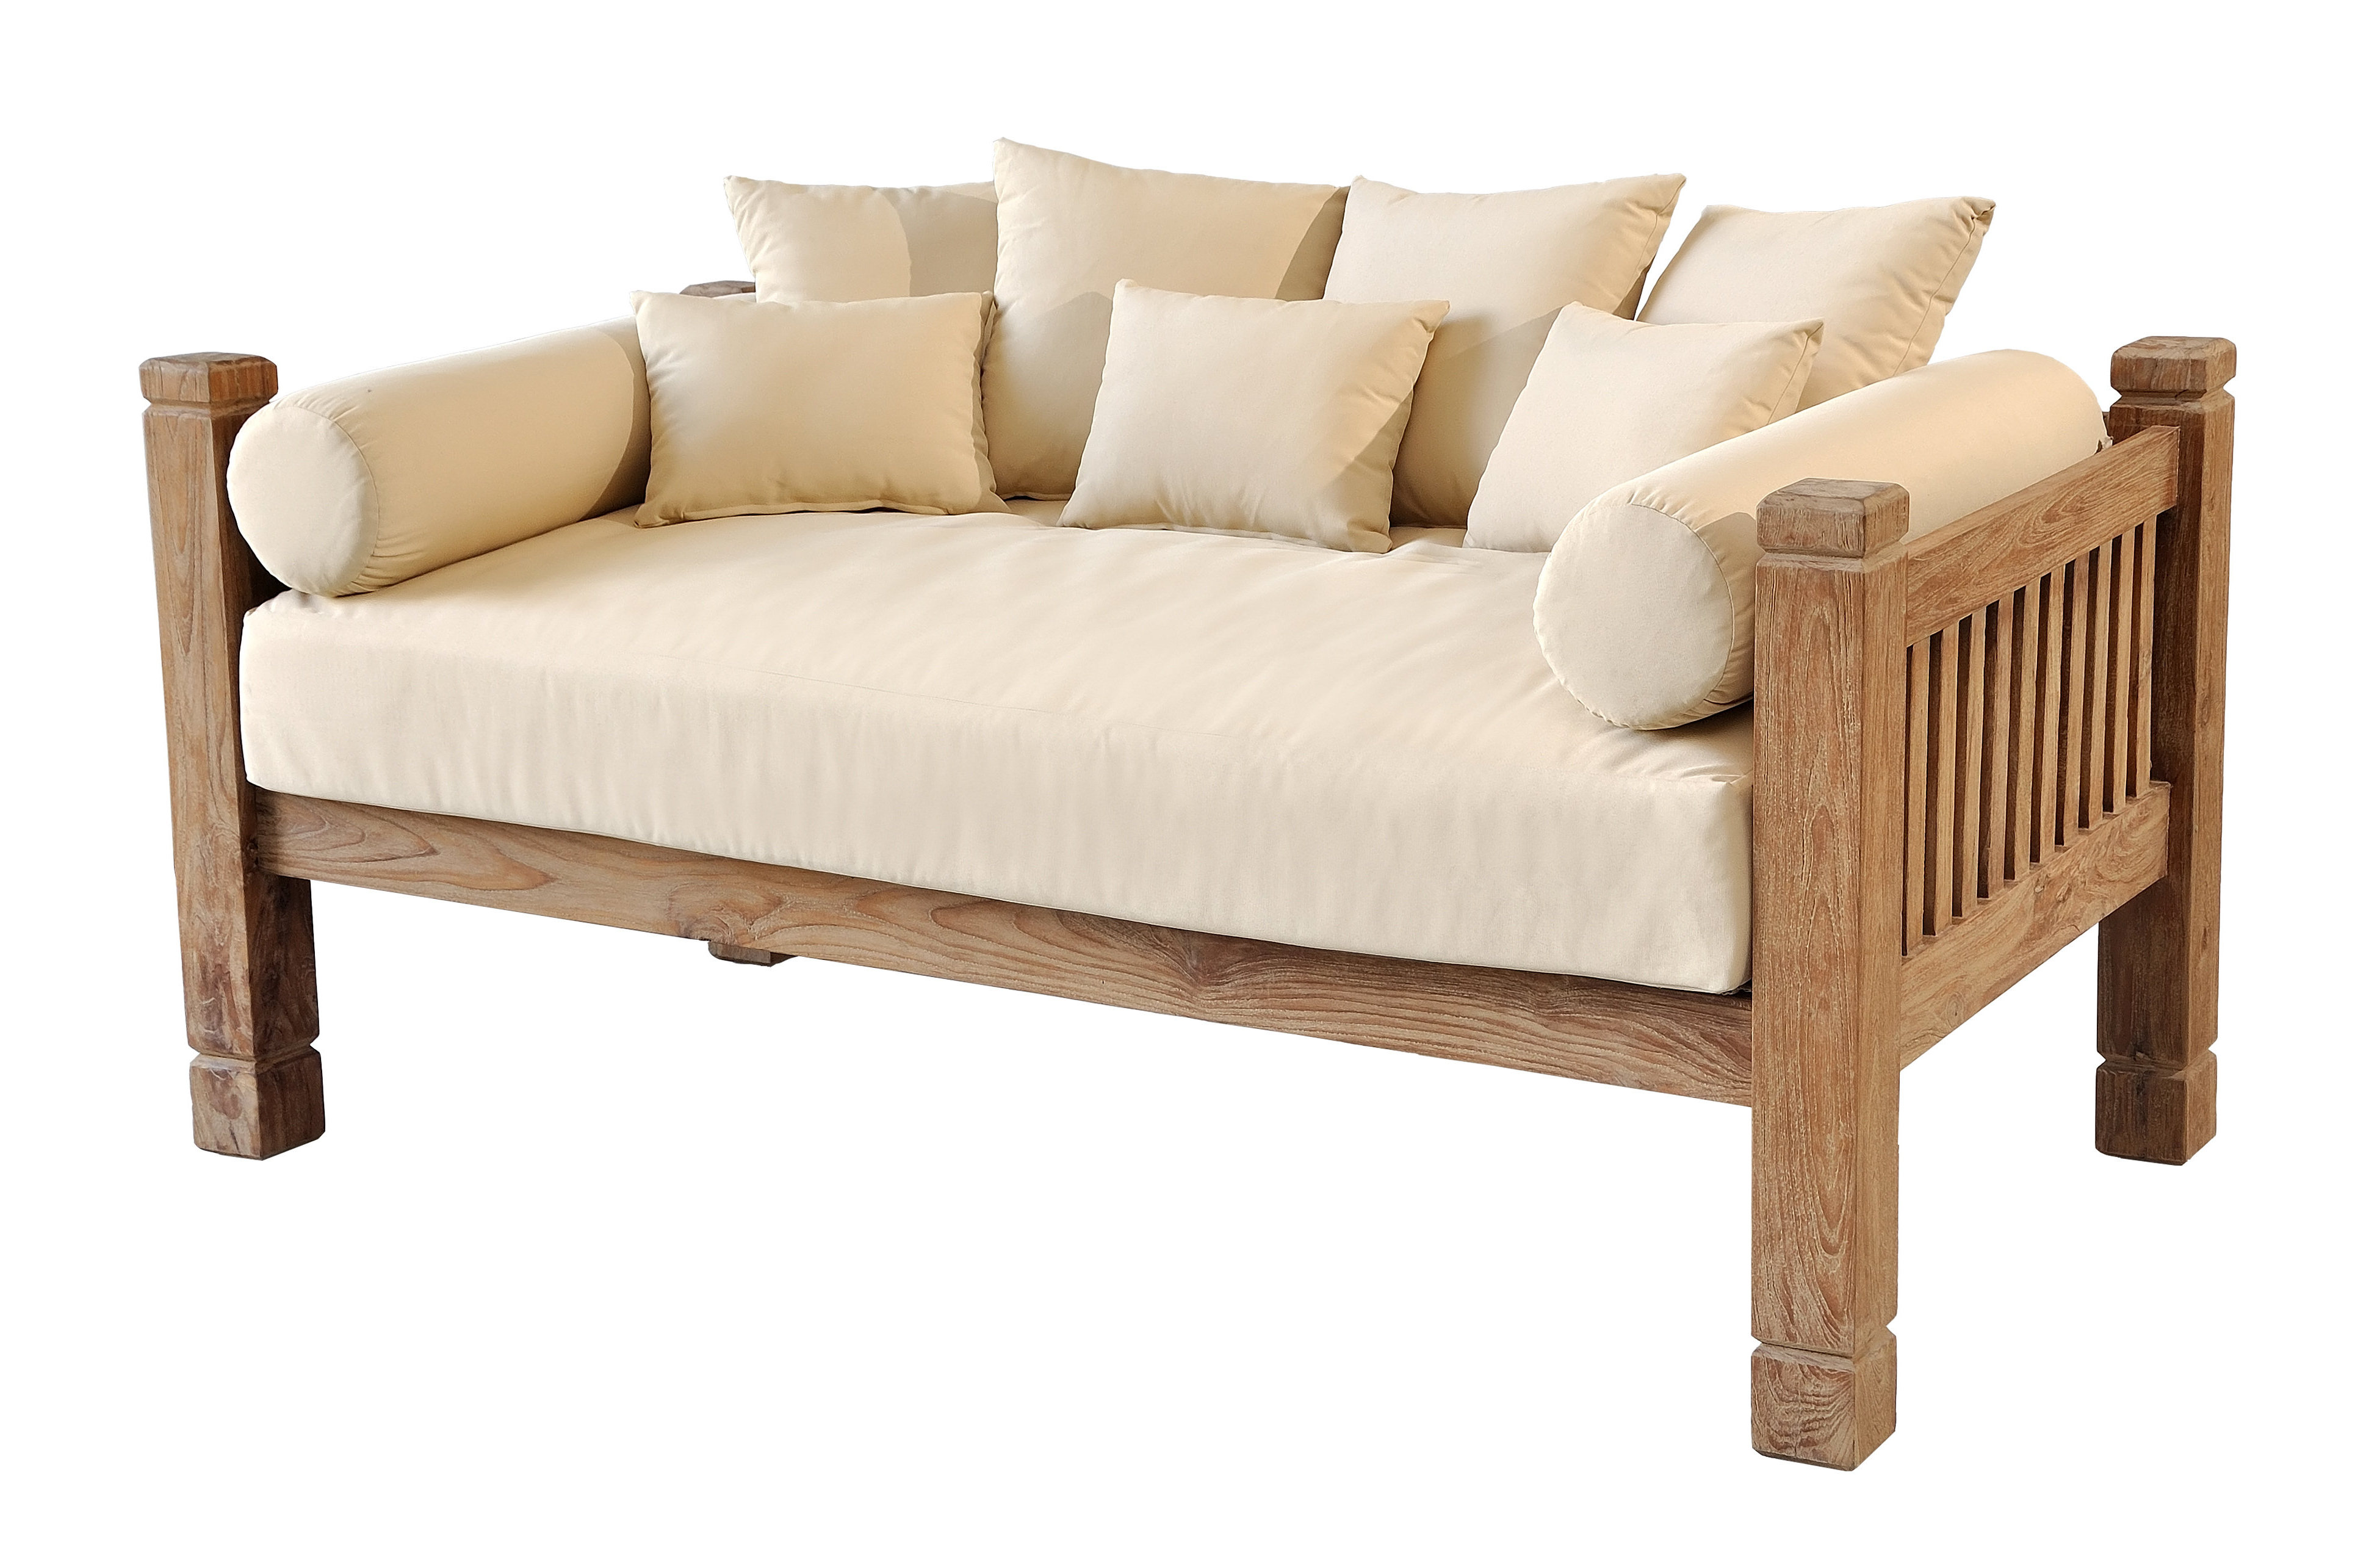 Patio Daybeds With Cushions Intended For Widely Used Perine Teak Patio Daybed With Cushions (View 18 of 20)